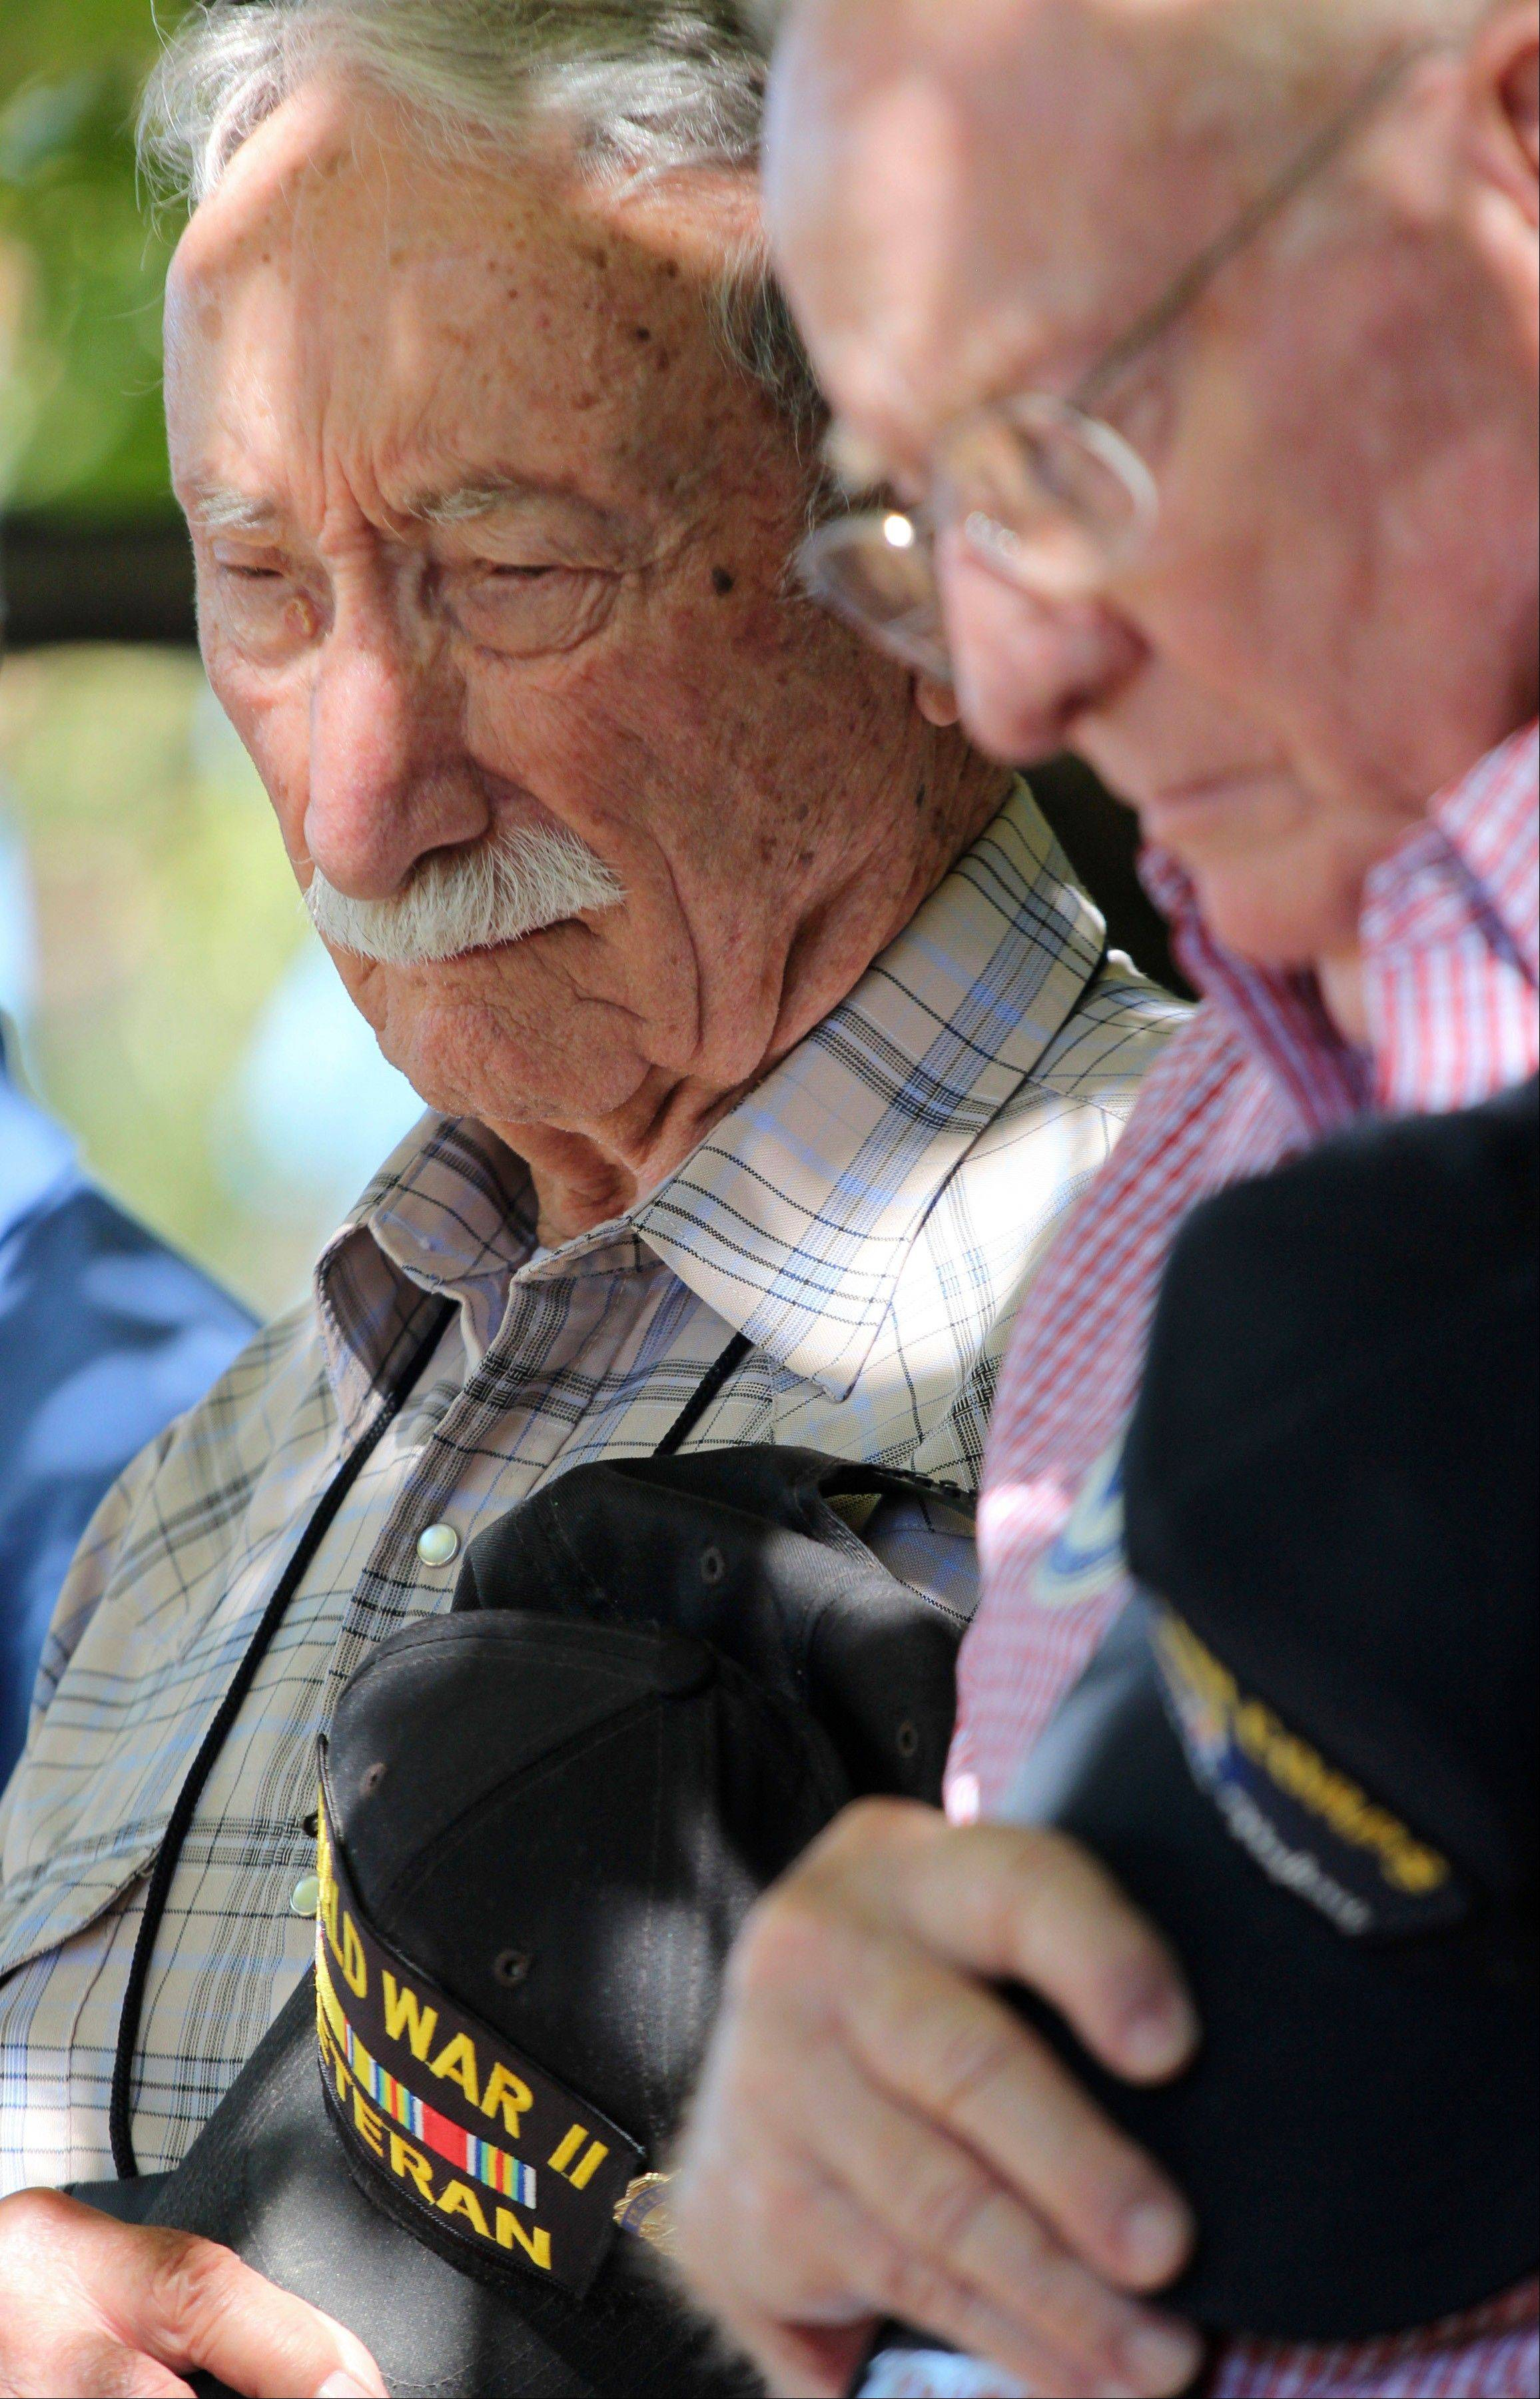 In this Sept. 27, 2013 photo, George Williams, left, and Robert Crouse, bow their heads as they take part in a memorial ceremony during a reunion outside the U.S. Air Force Museum at Wright Patterson Air Force base in Dayton, Ohio. As many as 11,000 people, including Williams and Crouse, served in the 57th Bomb Wing that flew missions over German-held Europe from North Africa and the island of Corsica during most of the war. Hundreds survive, according to wing historians and reunion organizers. Only nine veterans made it to this fall's event.